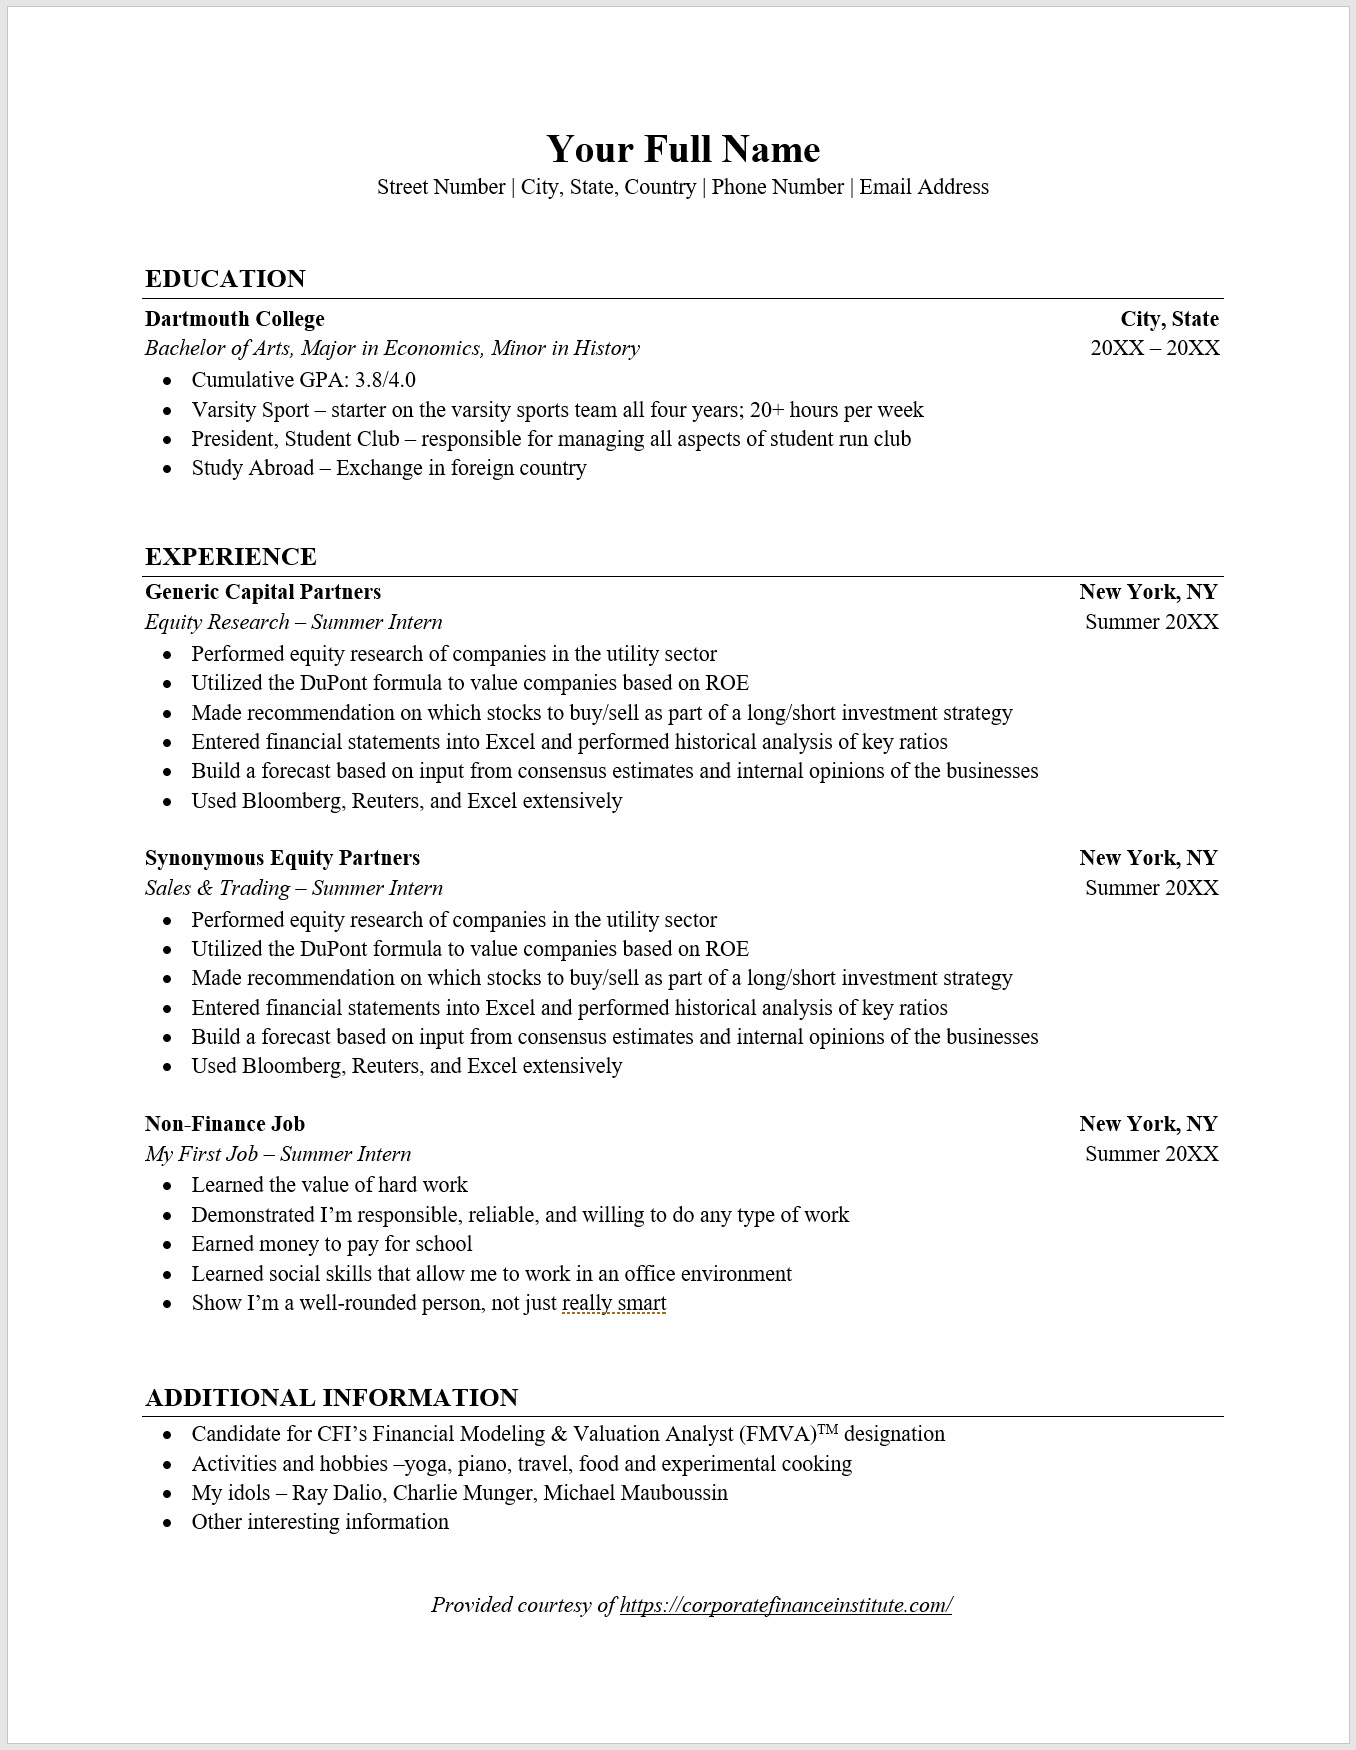 Investment Banking Resume Template - What You Must Include